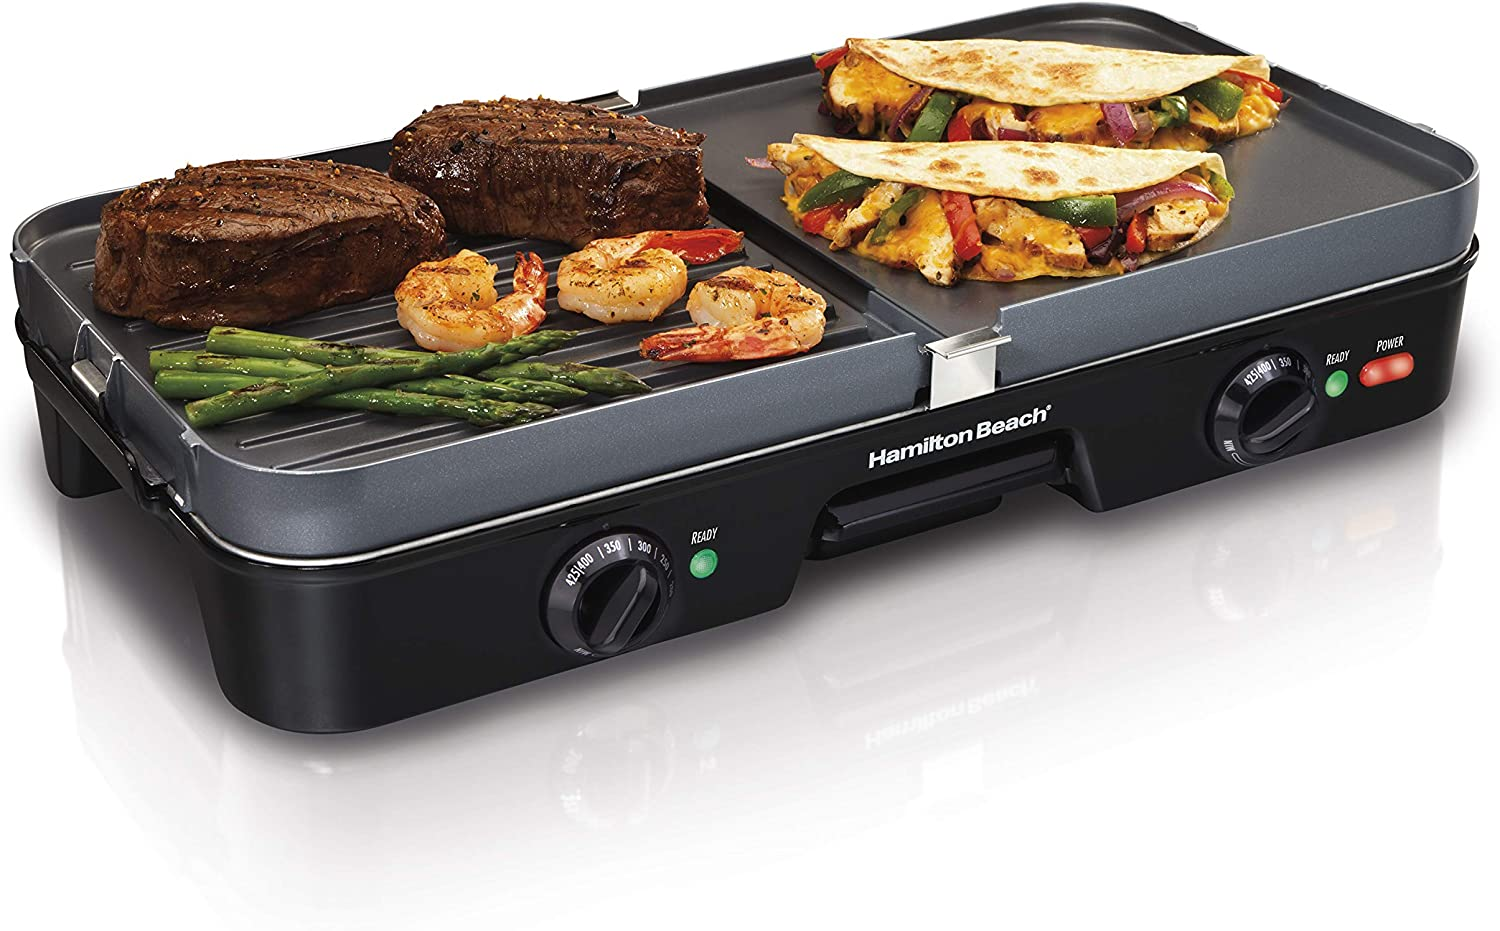 The Hamilton Beach 3-in-1 Electric Indoor Grill + Griddle Review